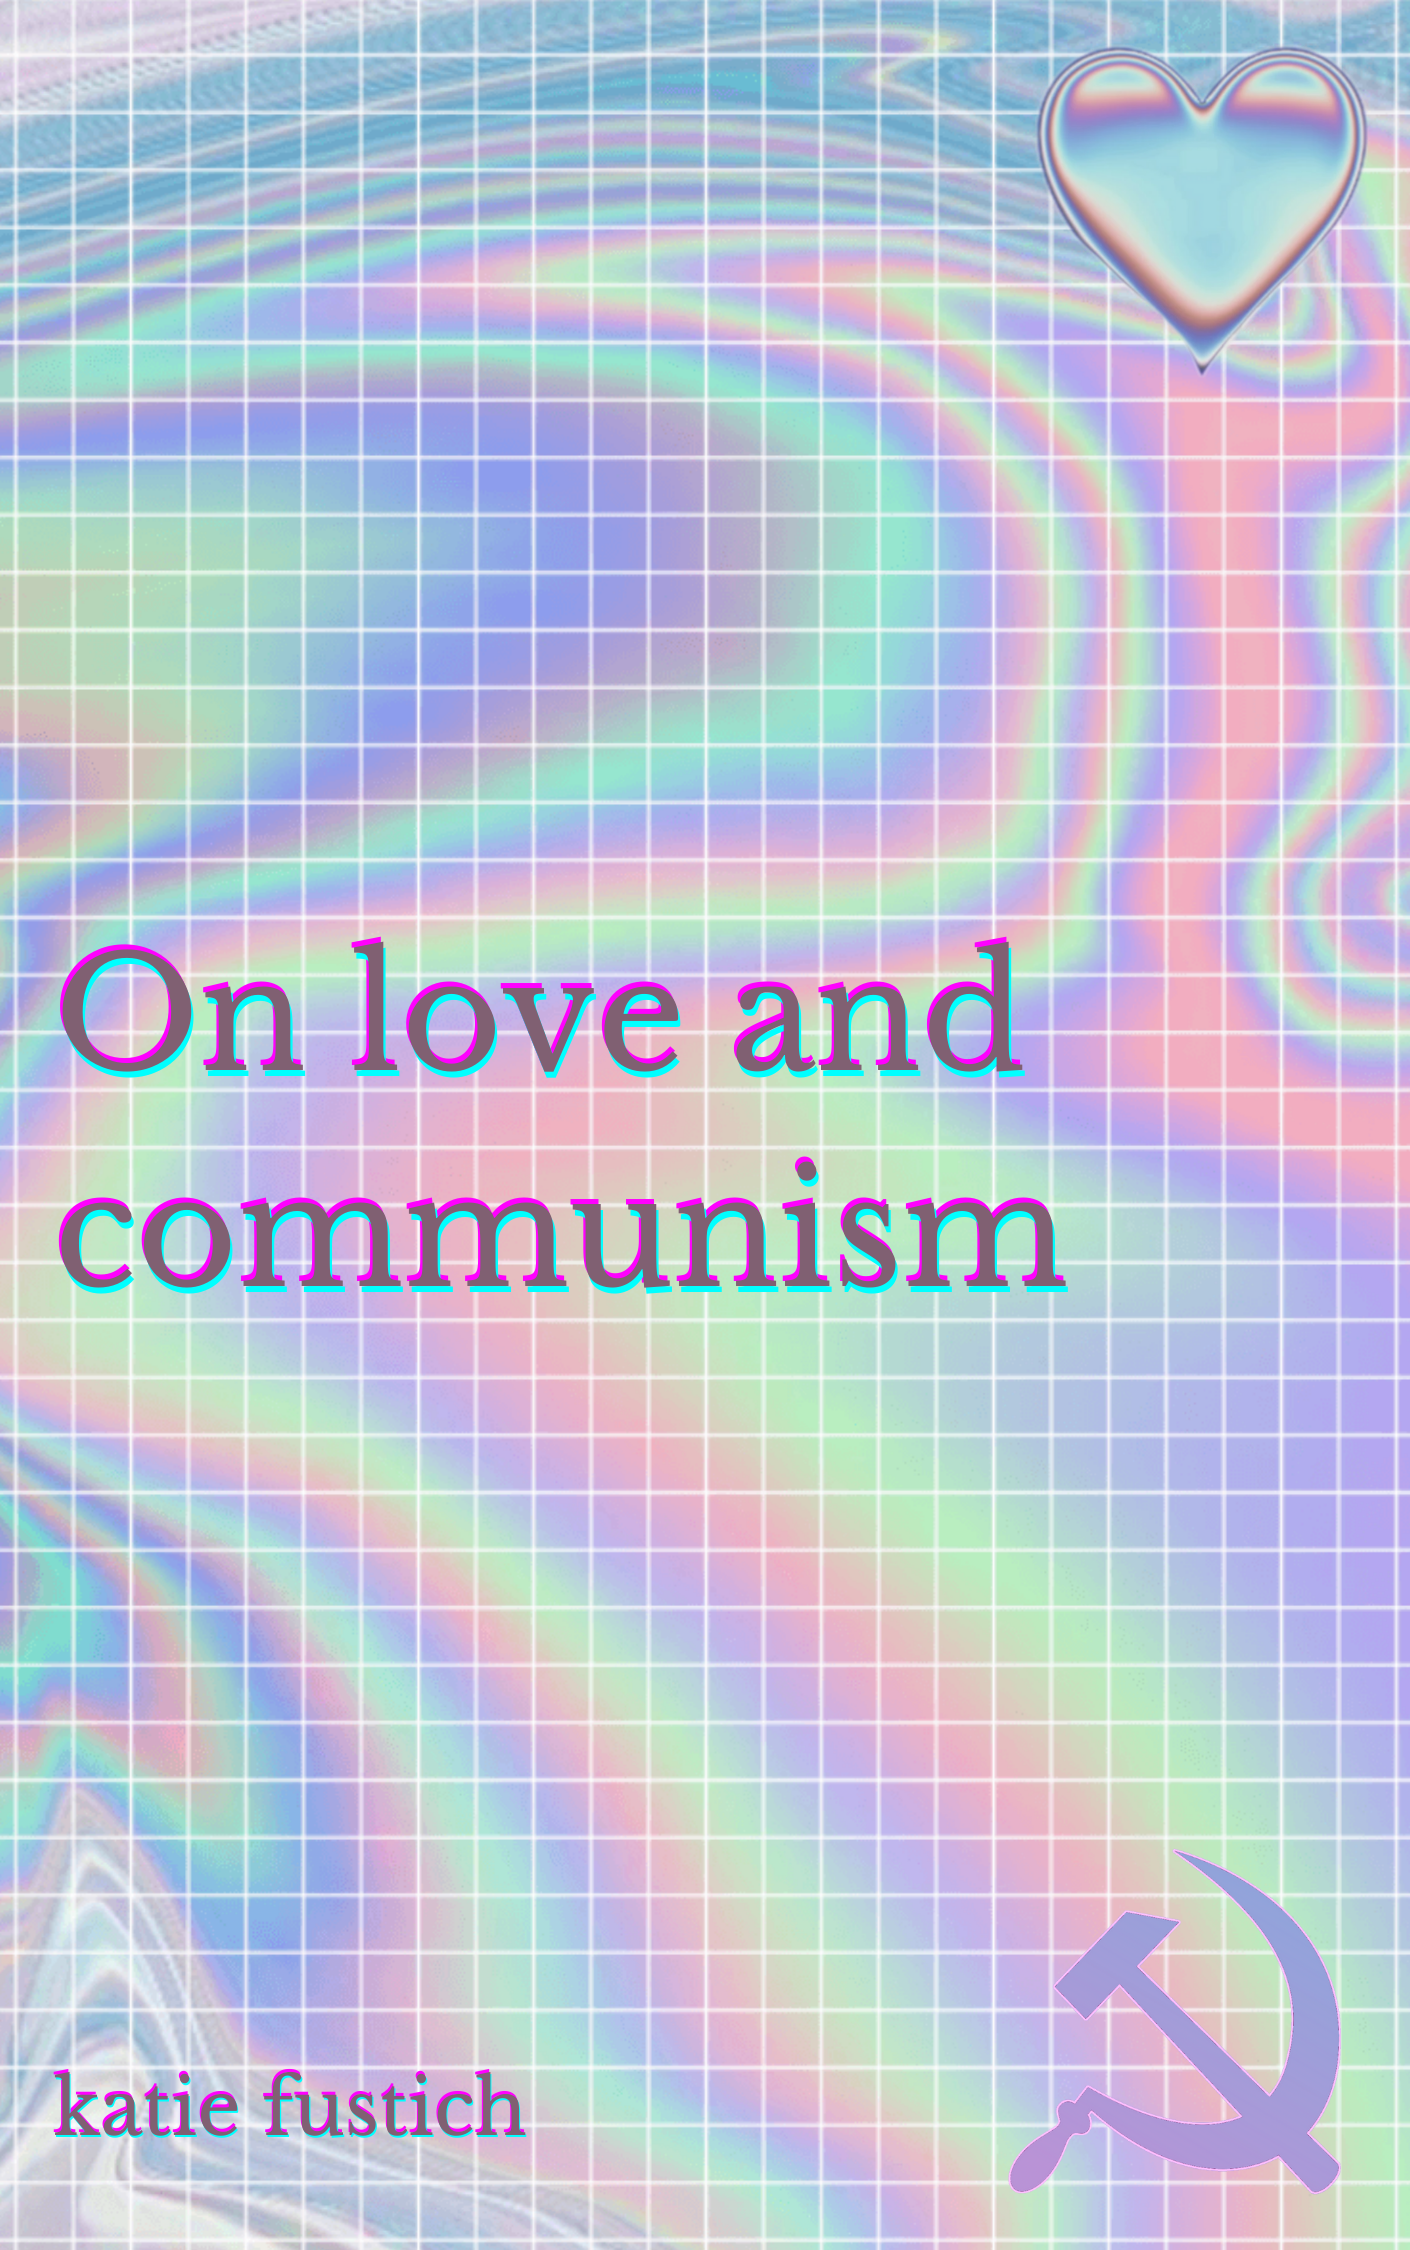 On love and communism